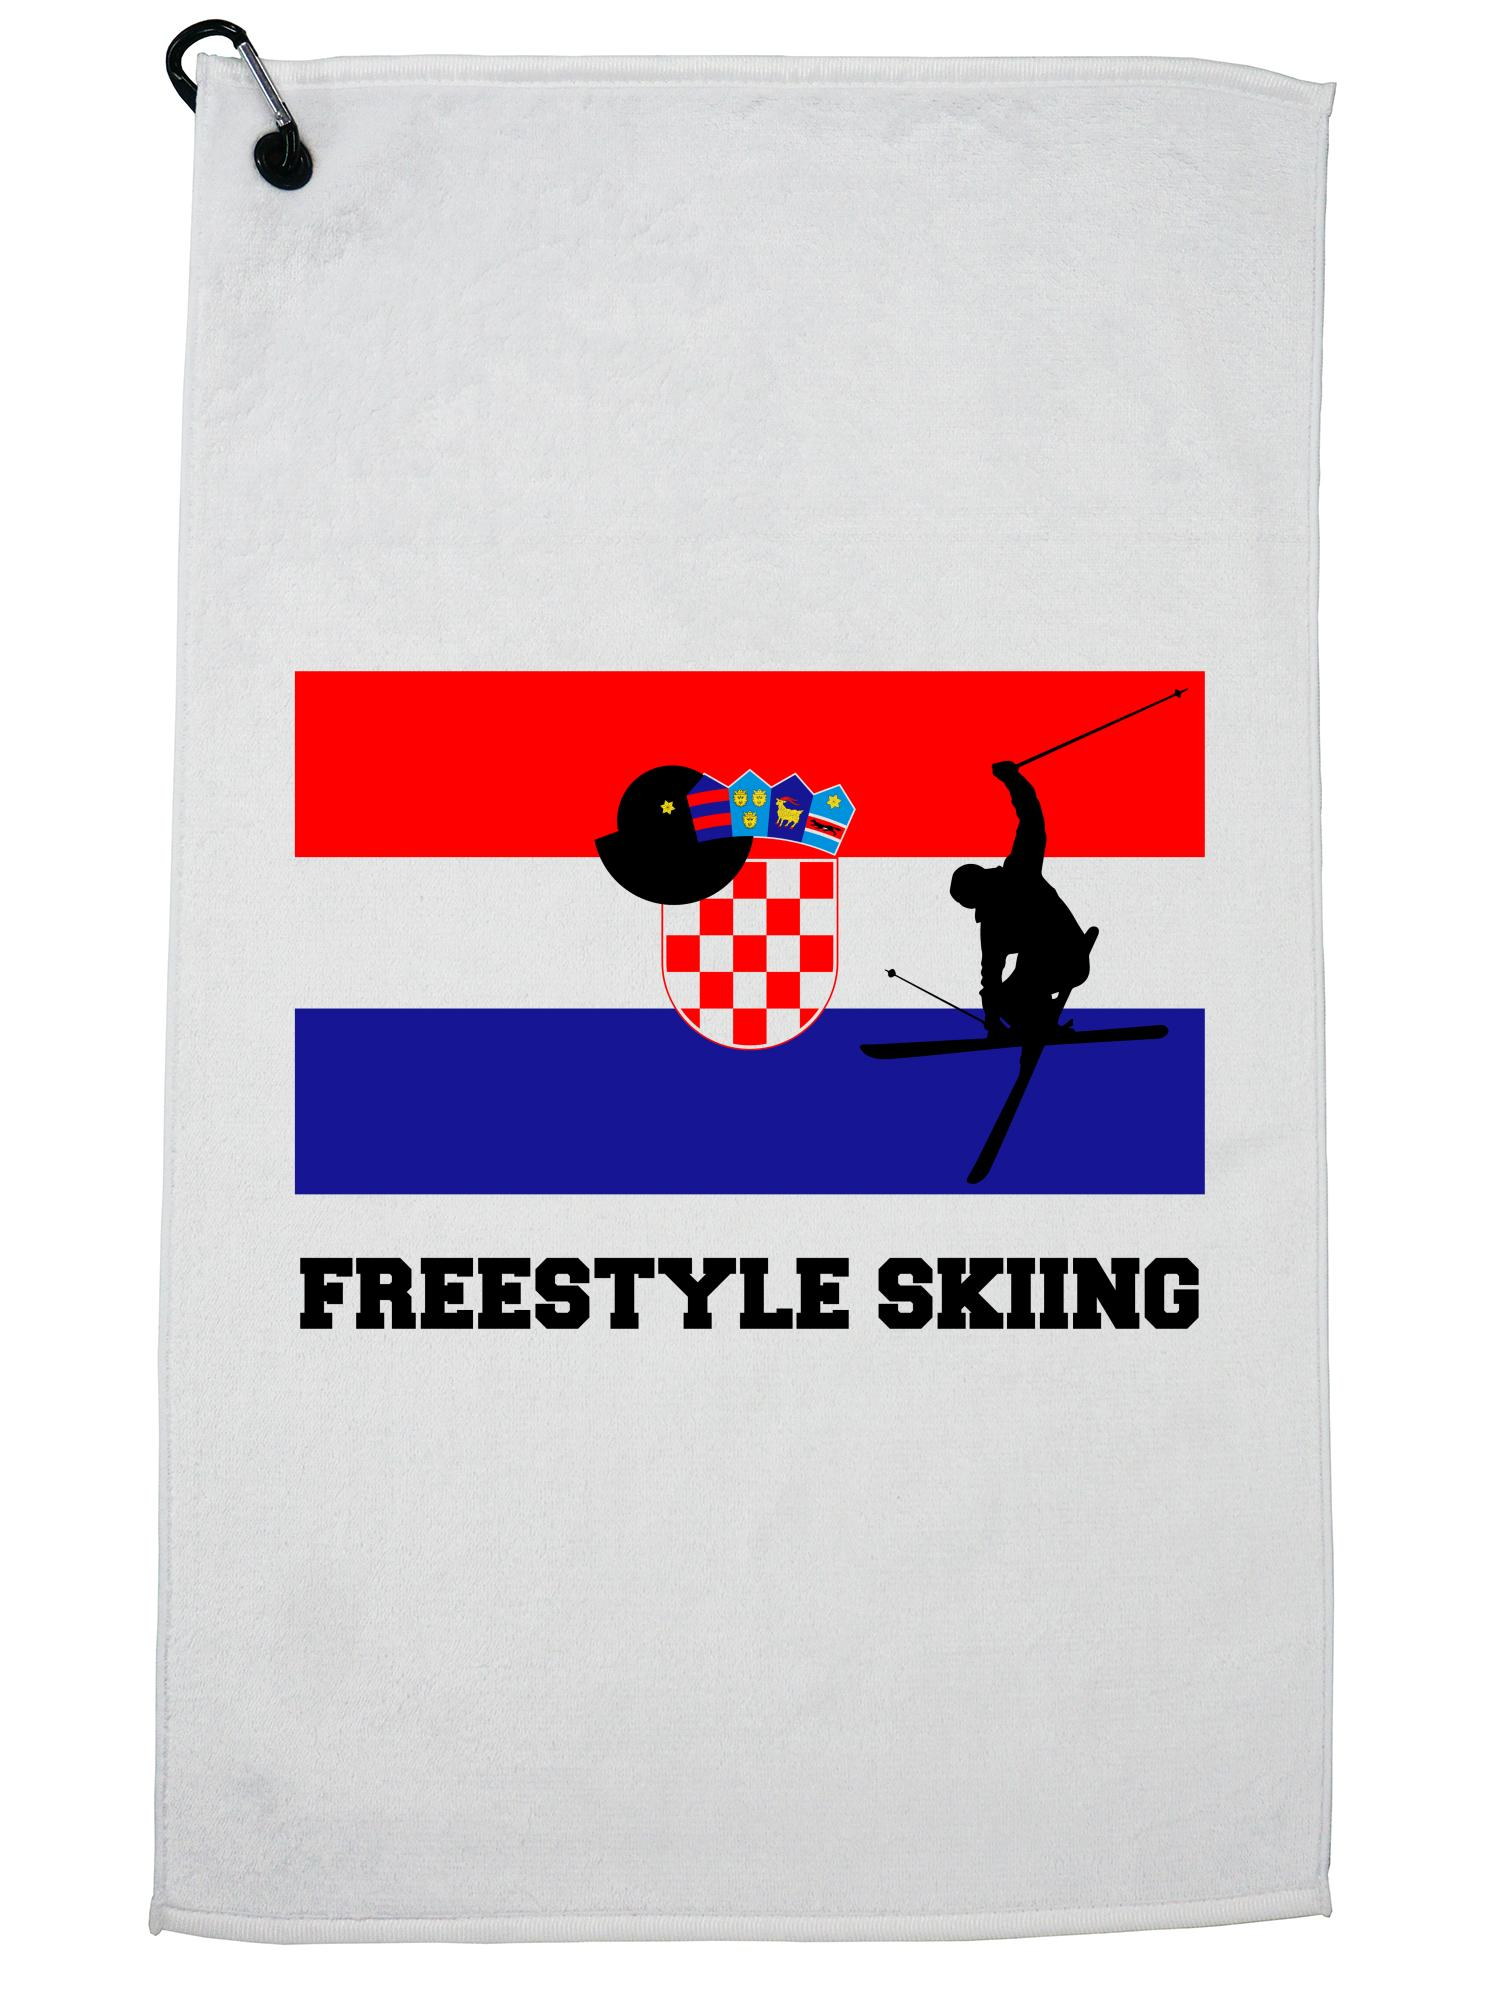 Croatia Olympic Freestyle Skiing Flag Silhouette Golf Towel with Carabiner Clip by Hollywood Thread